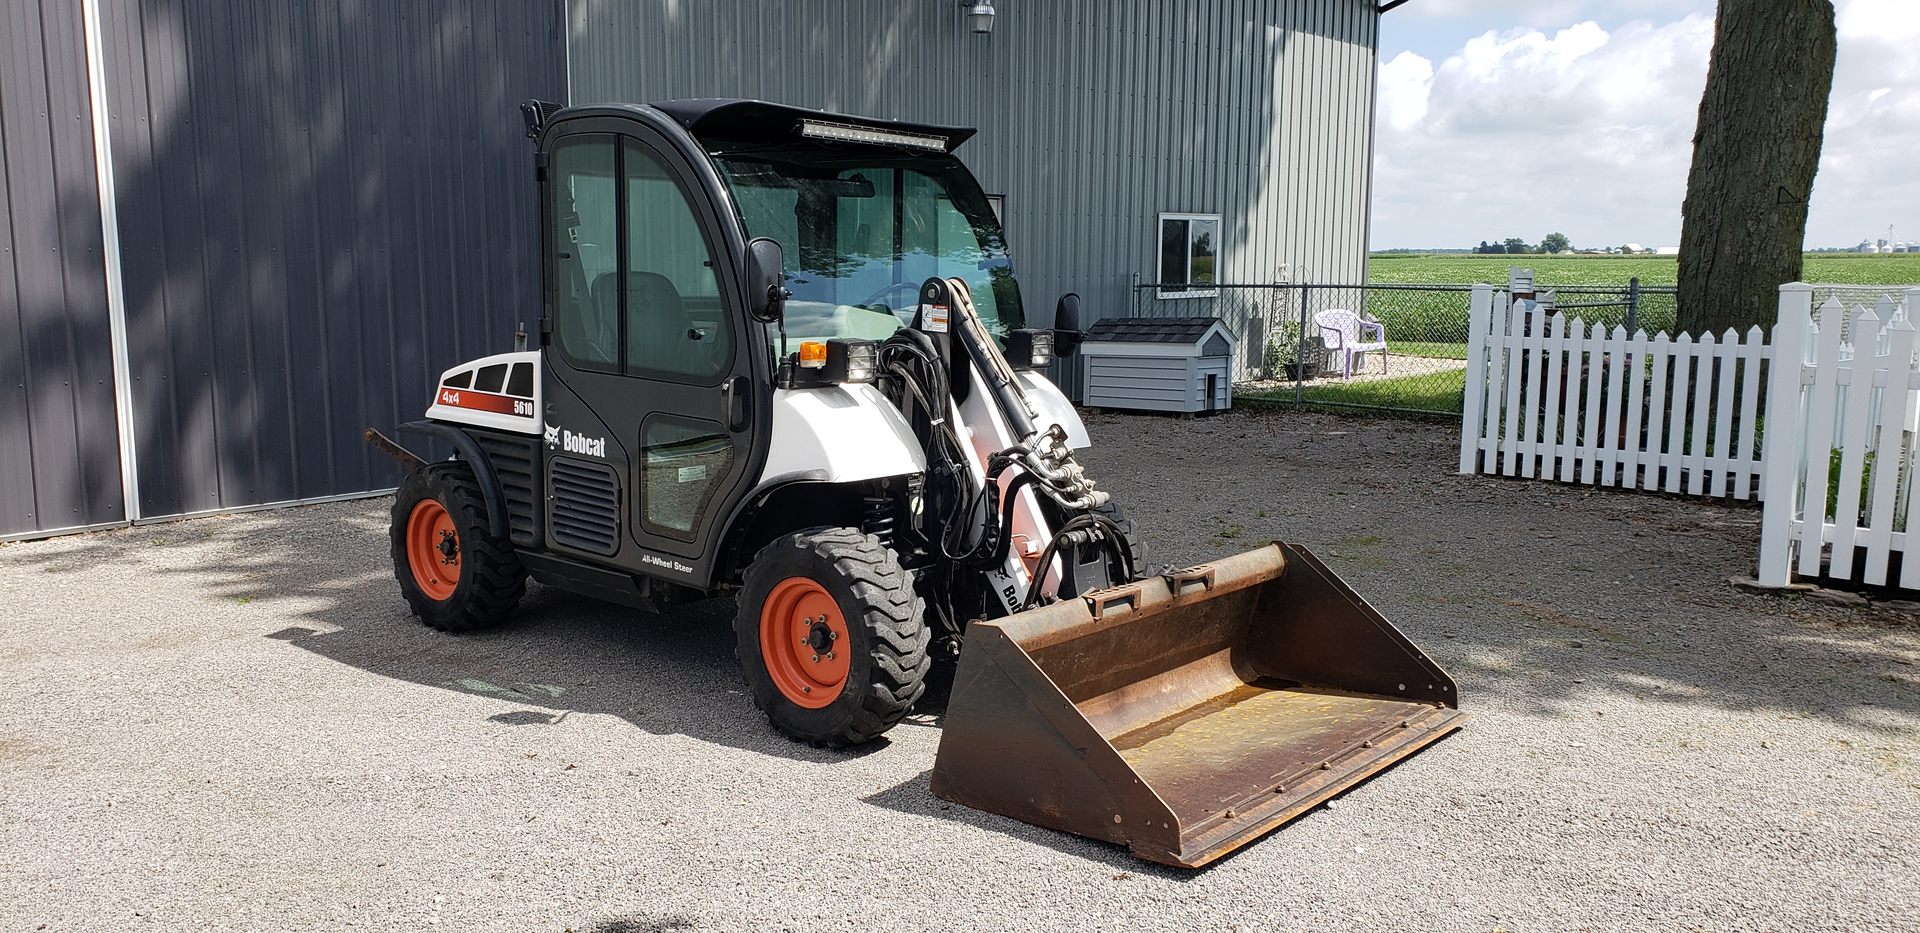 Nick's Loader Sales - CaterpillarSkid Steer For Sale, Bobcat